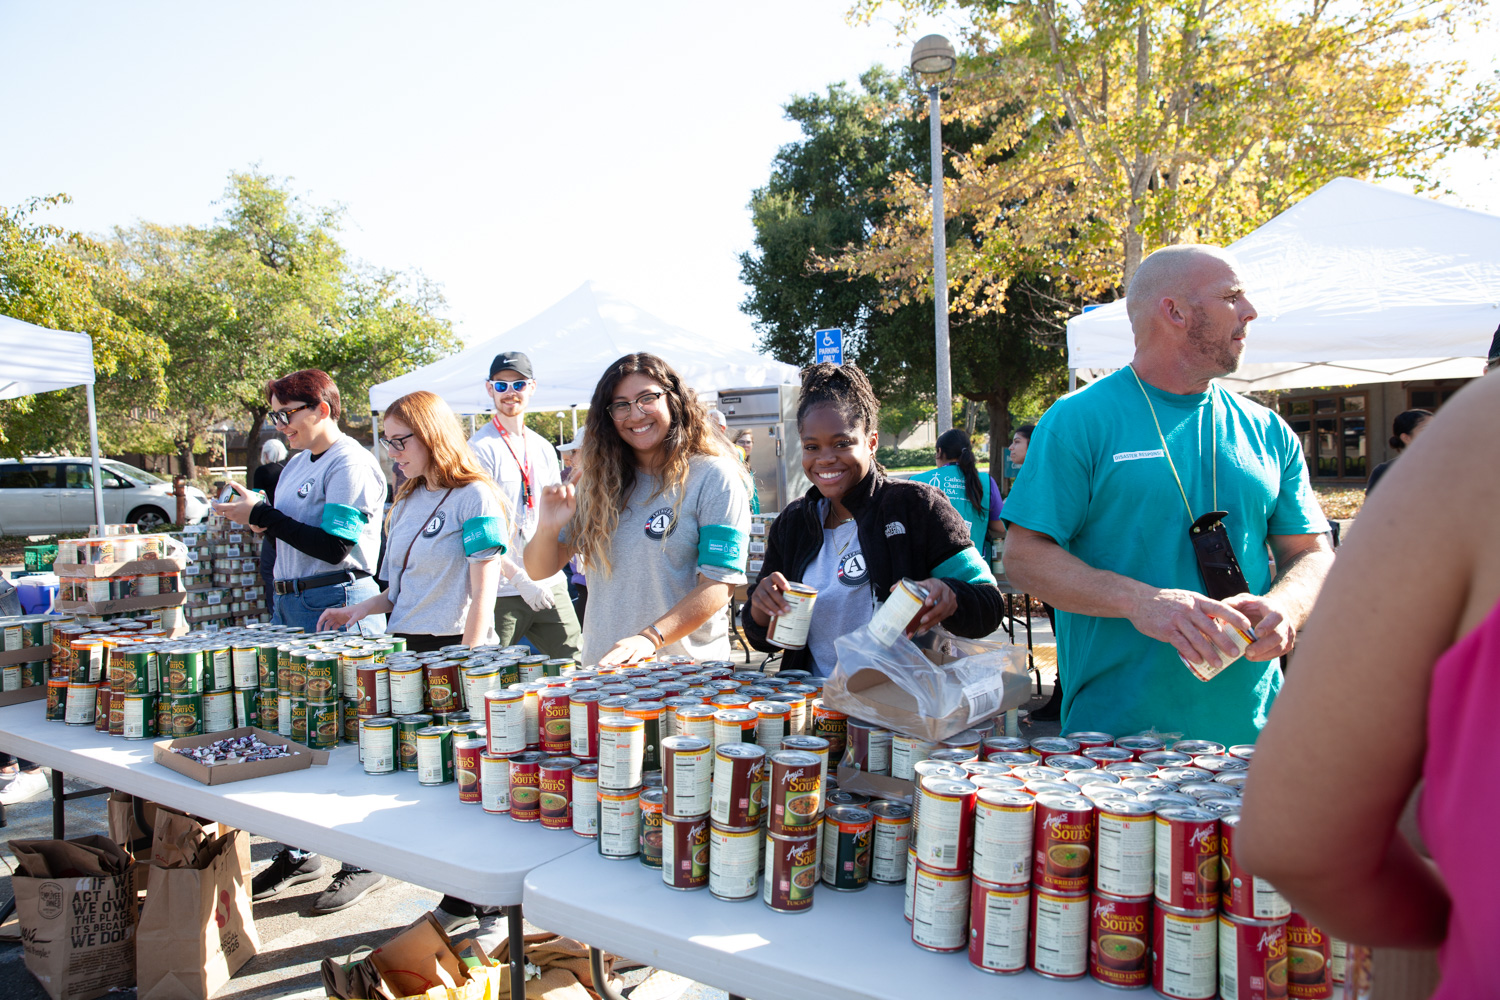 Volunteers at a food drive after the Kincade Fire in Sonoma County